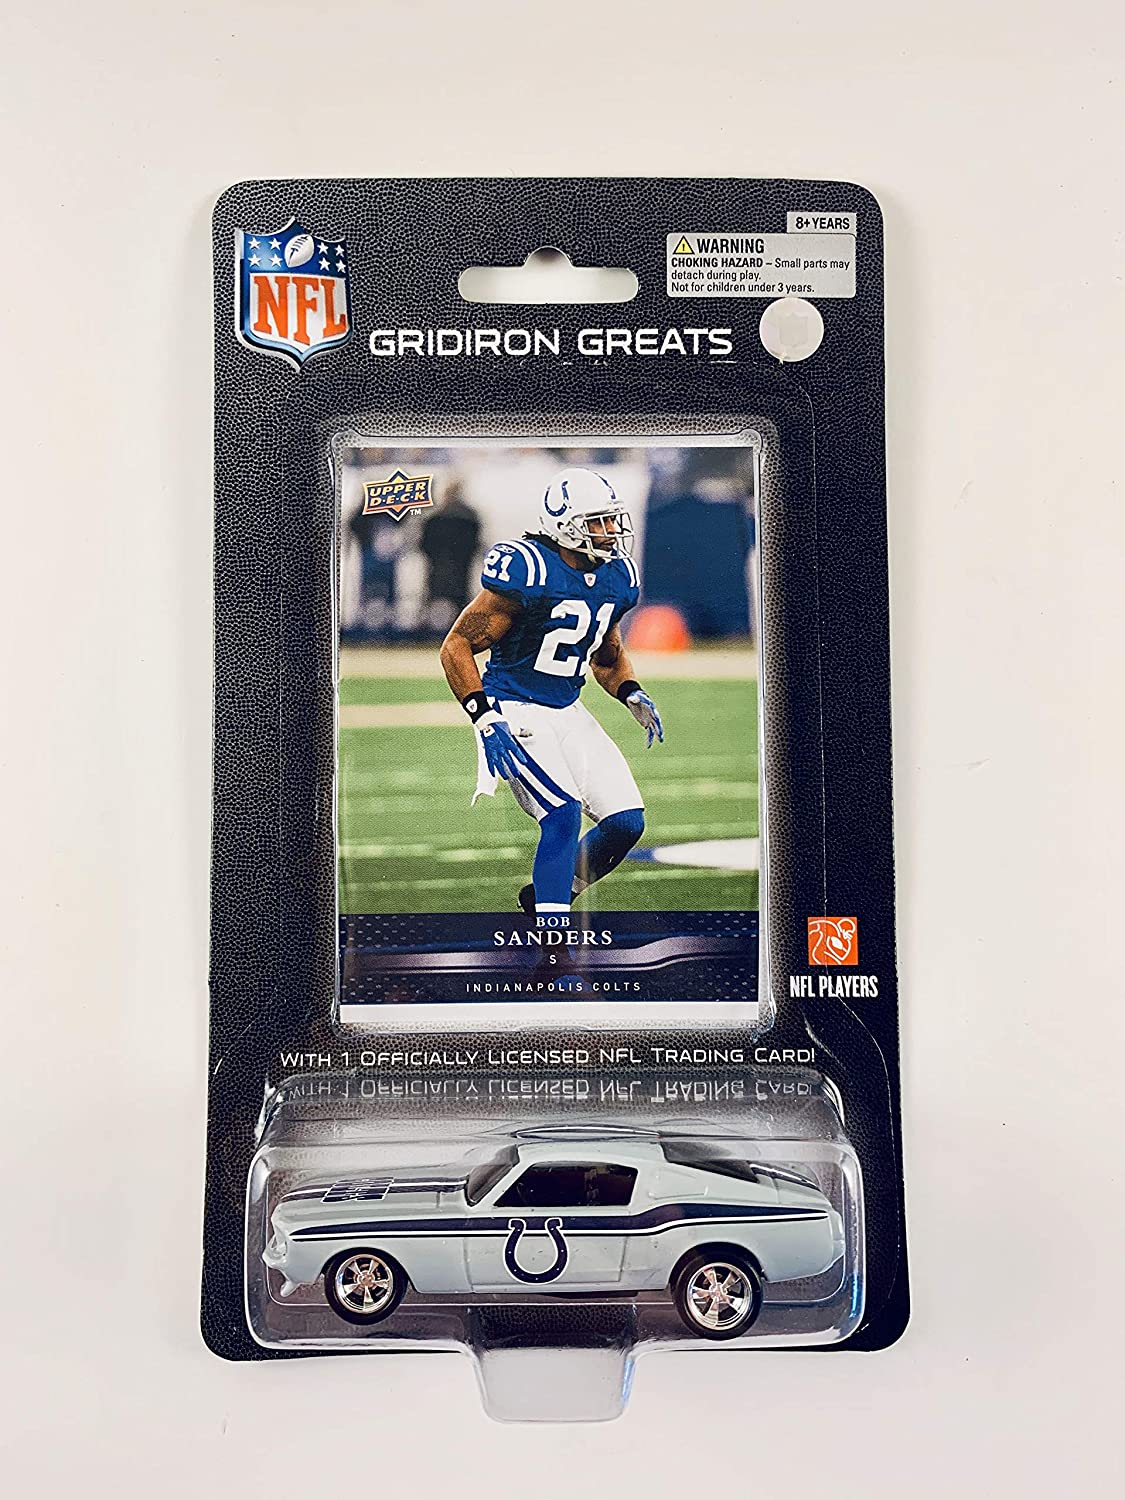 2008 UPPER DECK NFL Players REPLICA DIE CAST Car with Card 1:64 Scale 1967 Ford Mustang Fastback - Bob Sanders INDIANAPOLIS COLTS 91Hk6yhrctL